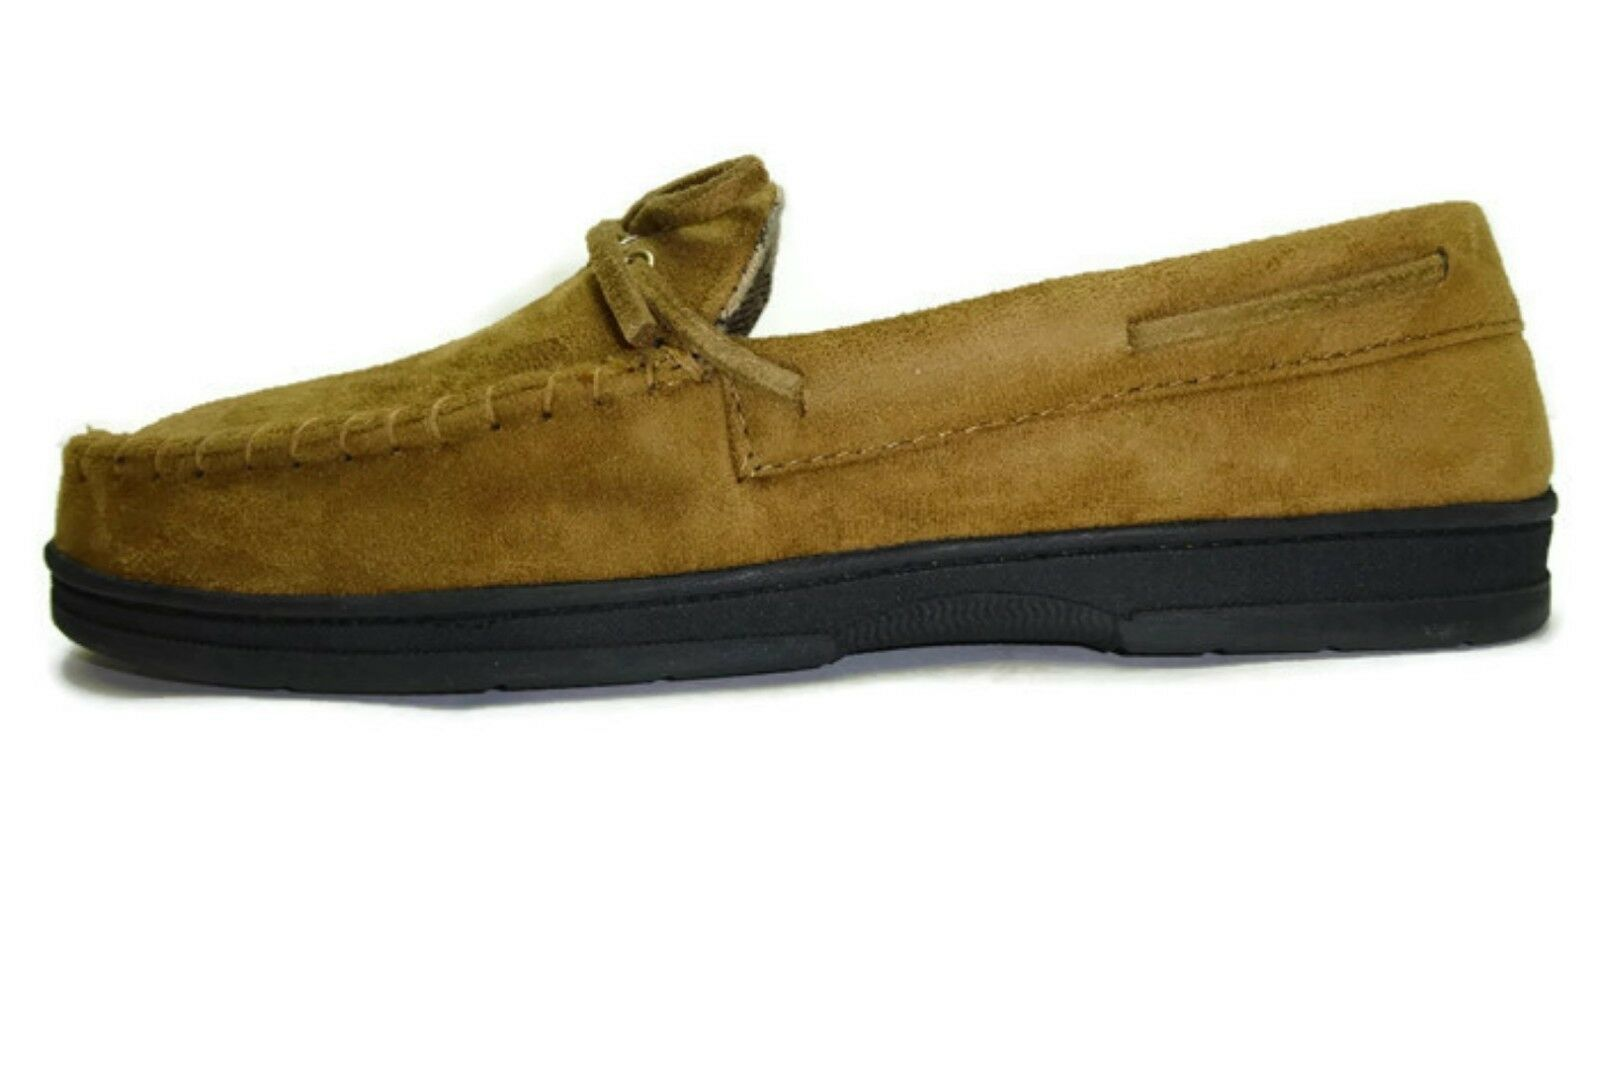 John Ashford Mens Ronald Microsuede Foam Cushion Moccasin Slippers TAN 11-12 XL